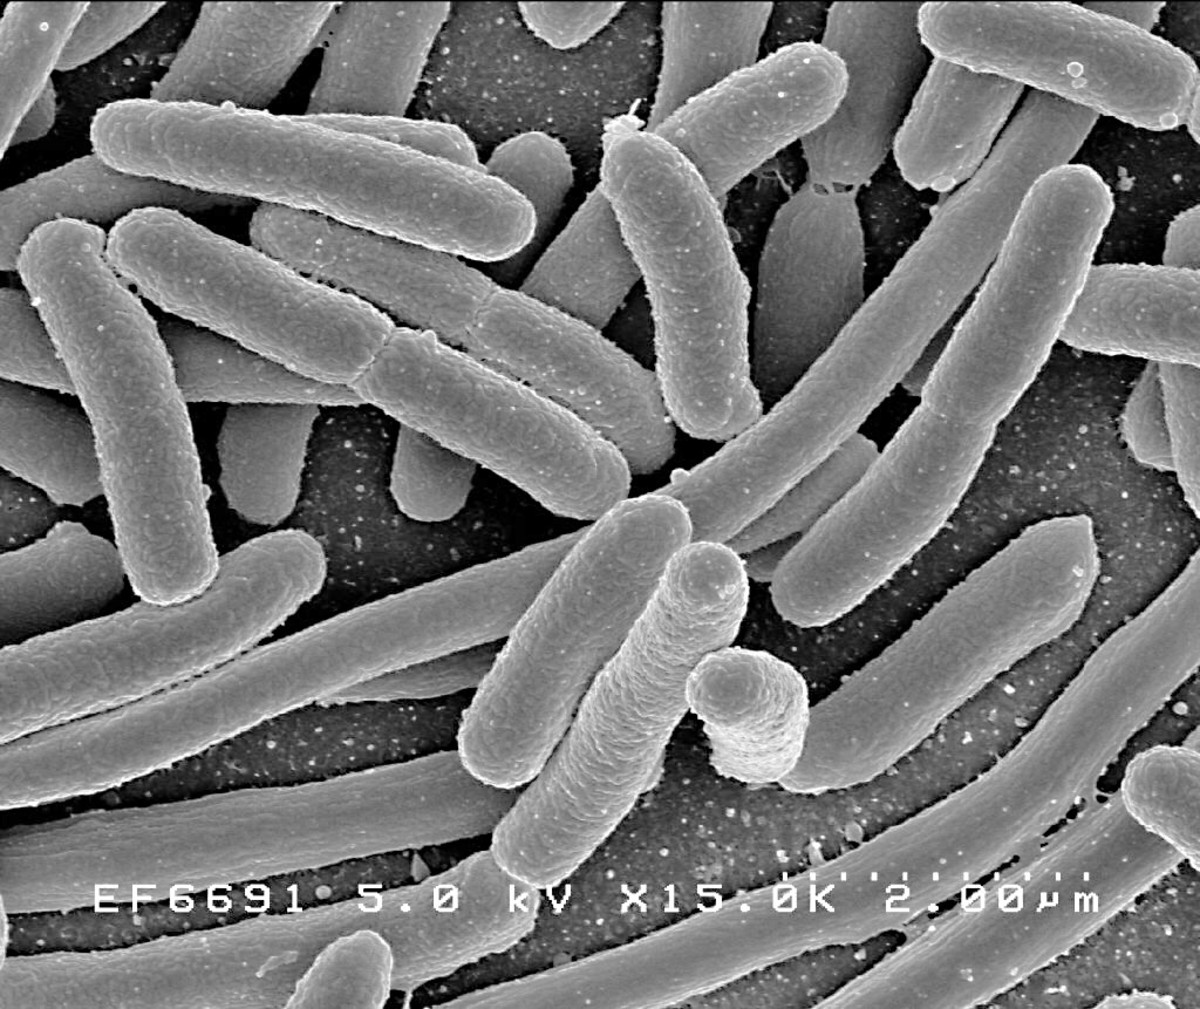 Escherichia coli, or E. coli, lives in our large intestine and is helpful. Some strains of E. coli are harmful, however.